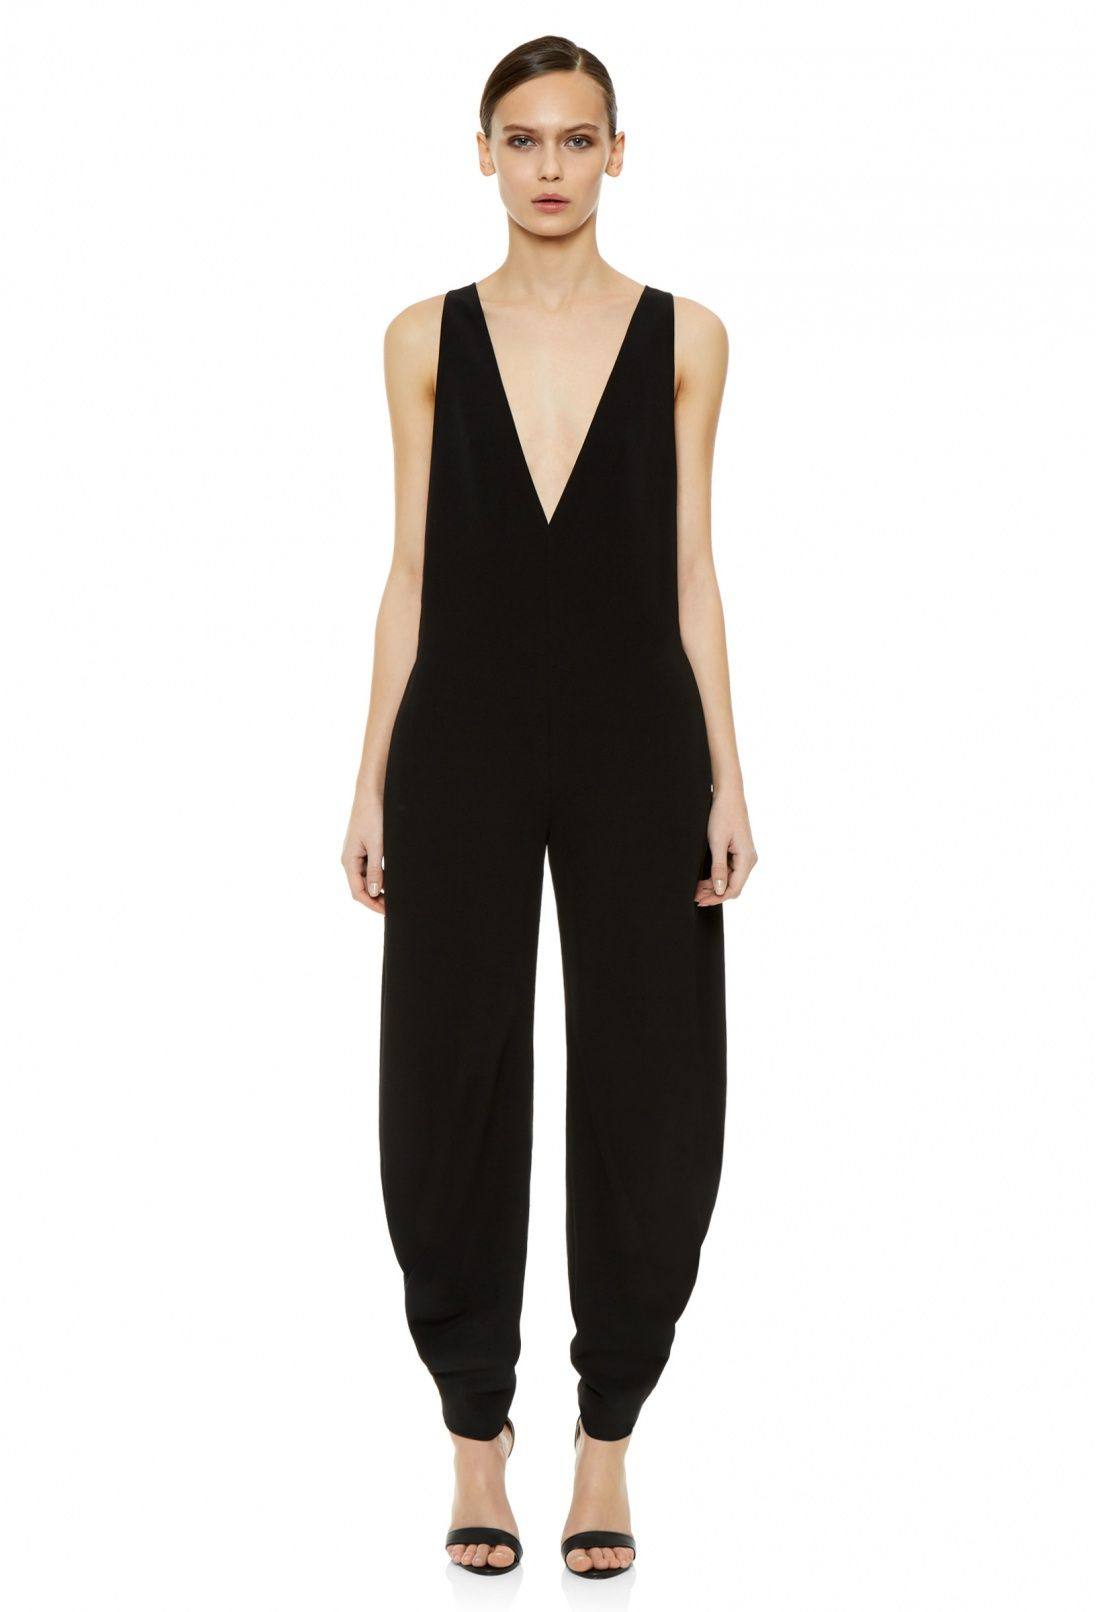 1a41572c6fb Want. But imma need a tube top of somethin. Lol. Axis Loose Fitting Jumpsuit  with Deep Plunge Front · Black · AQ AQ